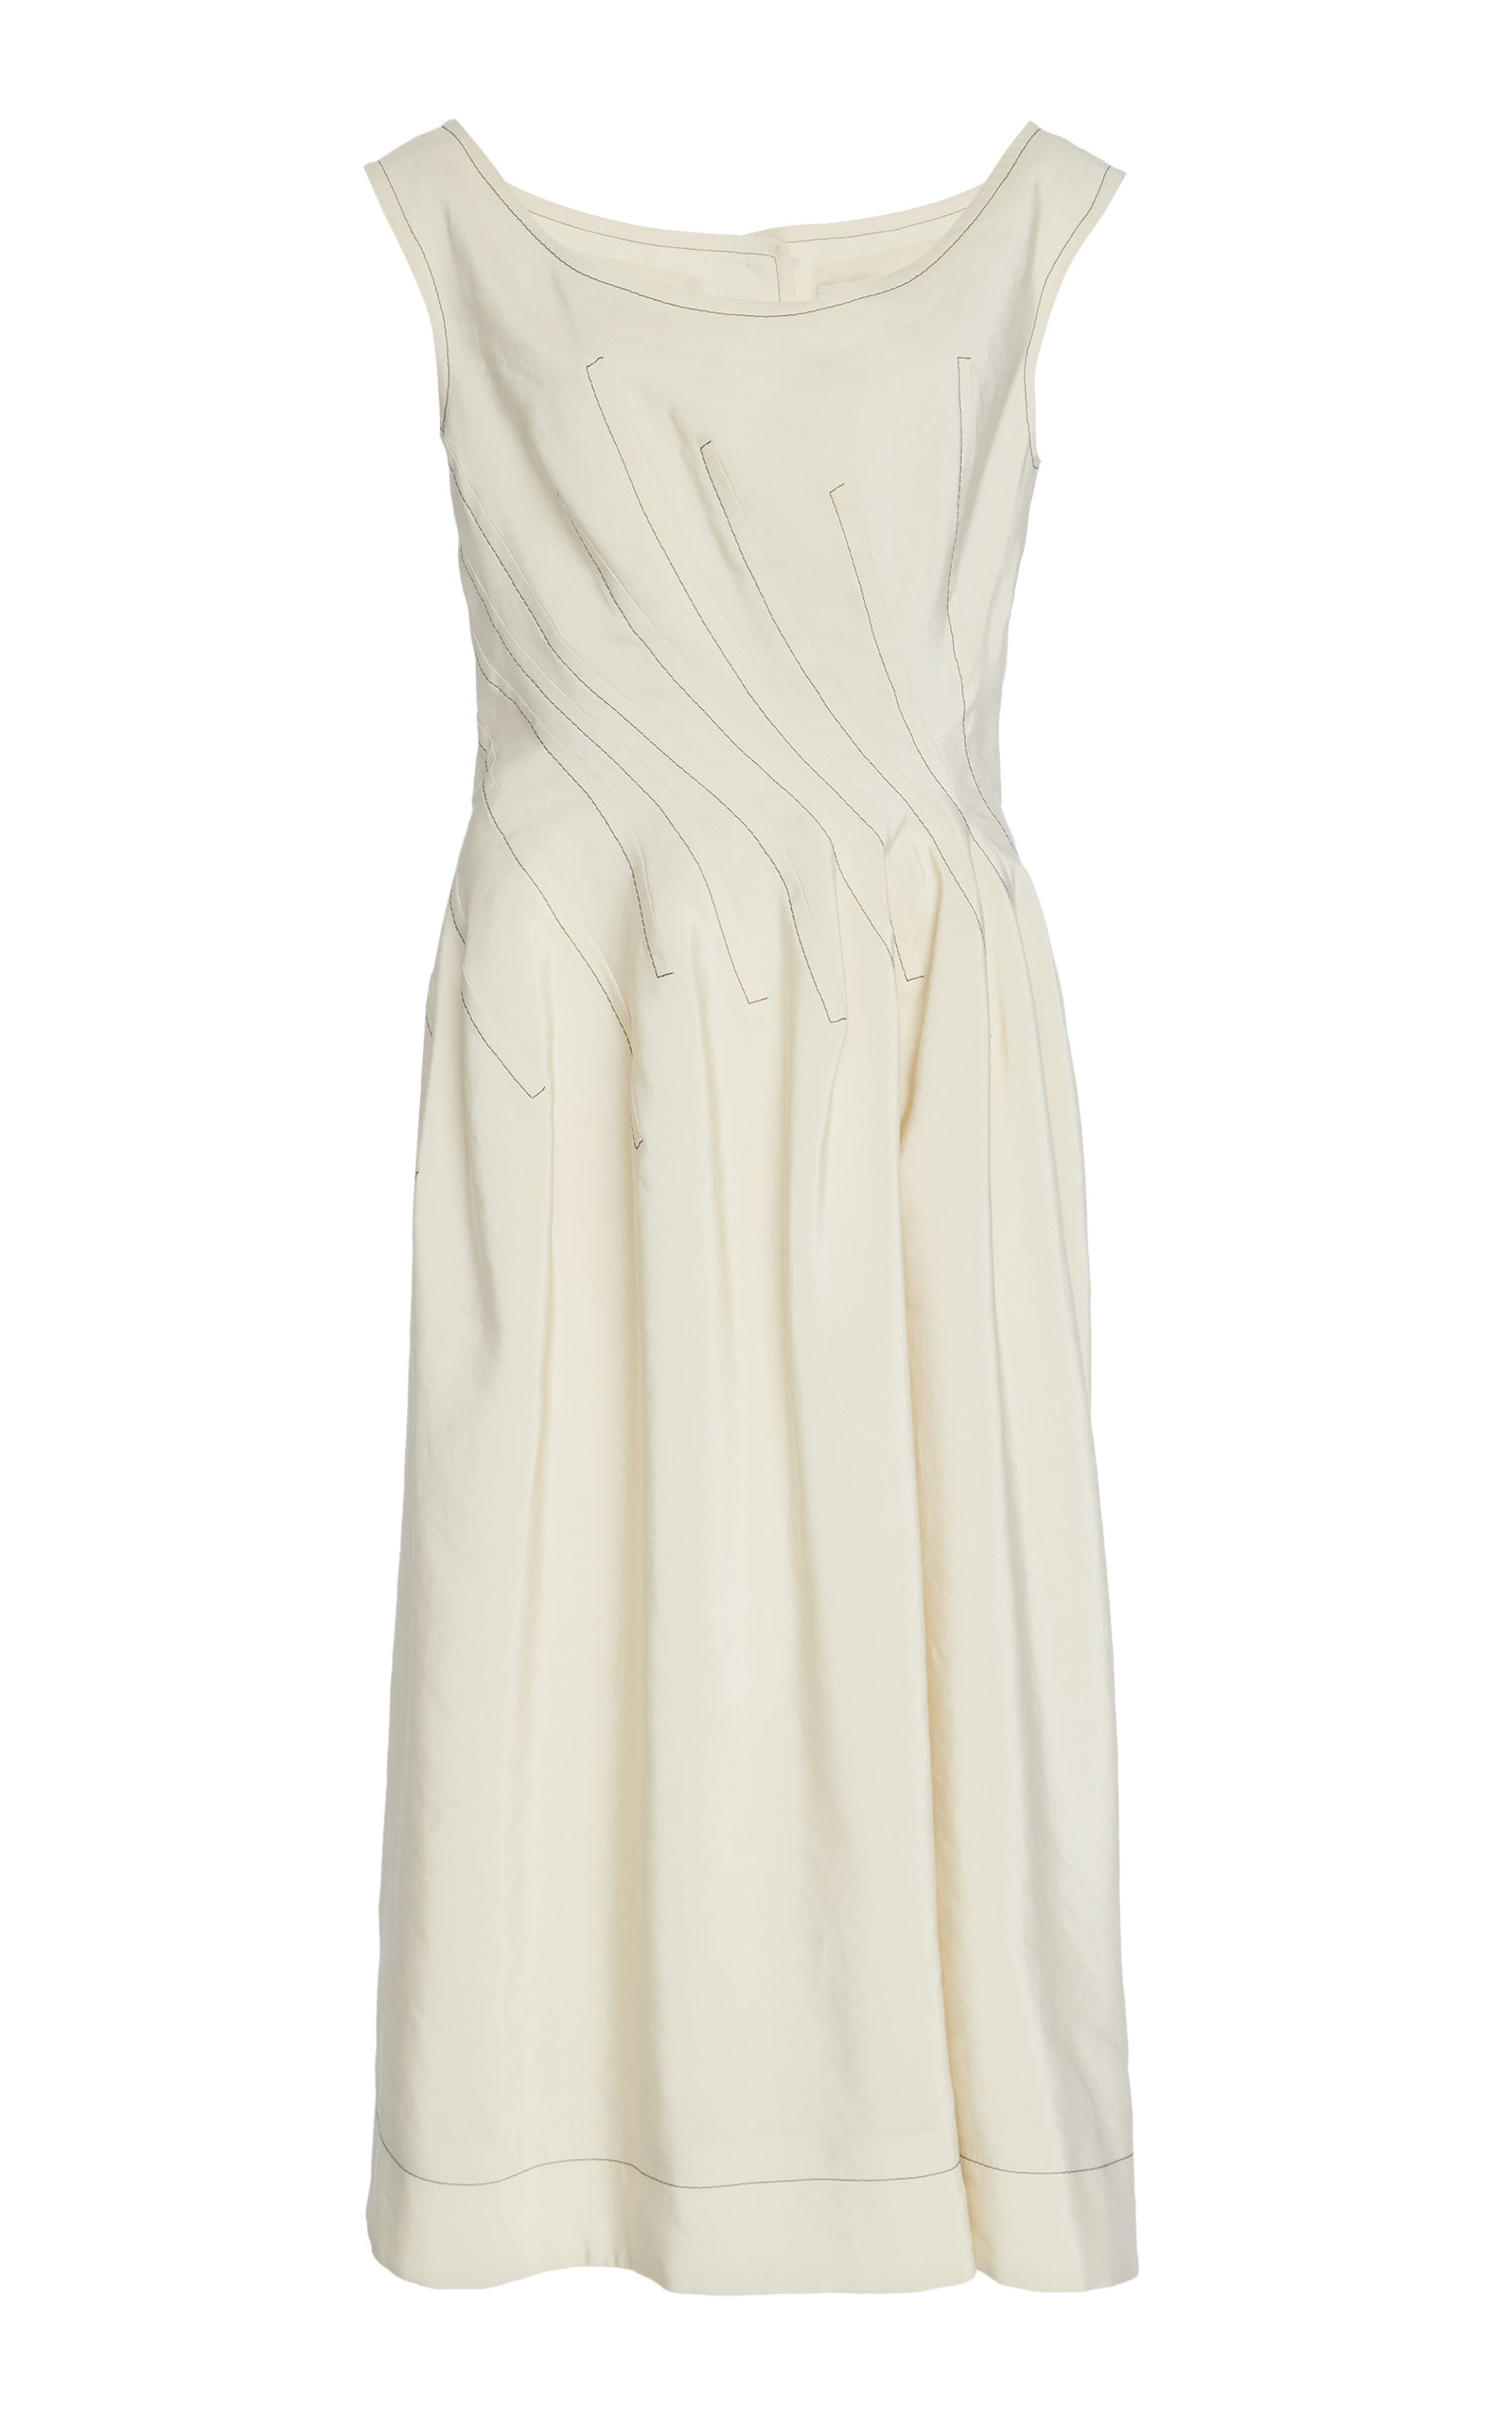 Buy Marni Contrast Stitch Dress online, shop Marni at the best price